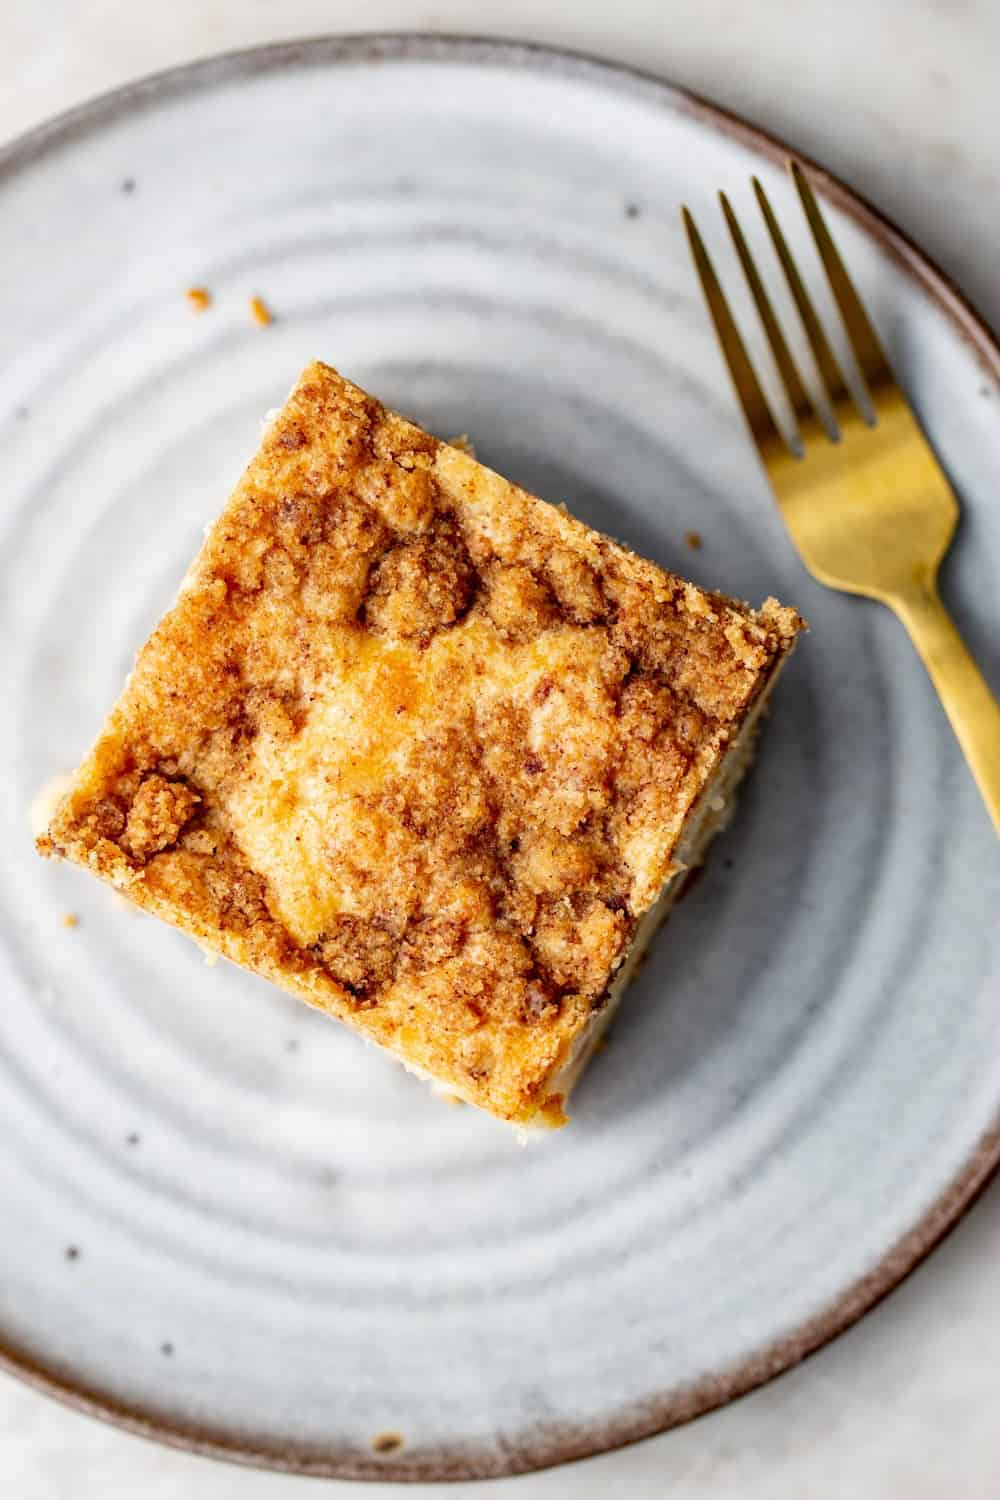 Overhead view of cinnamon coffee cake topped with cinnamon streusel on a white plate next to a gold fork